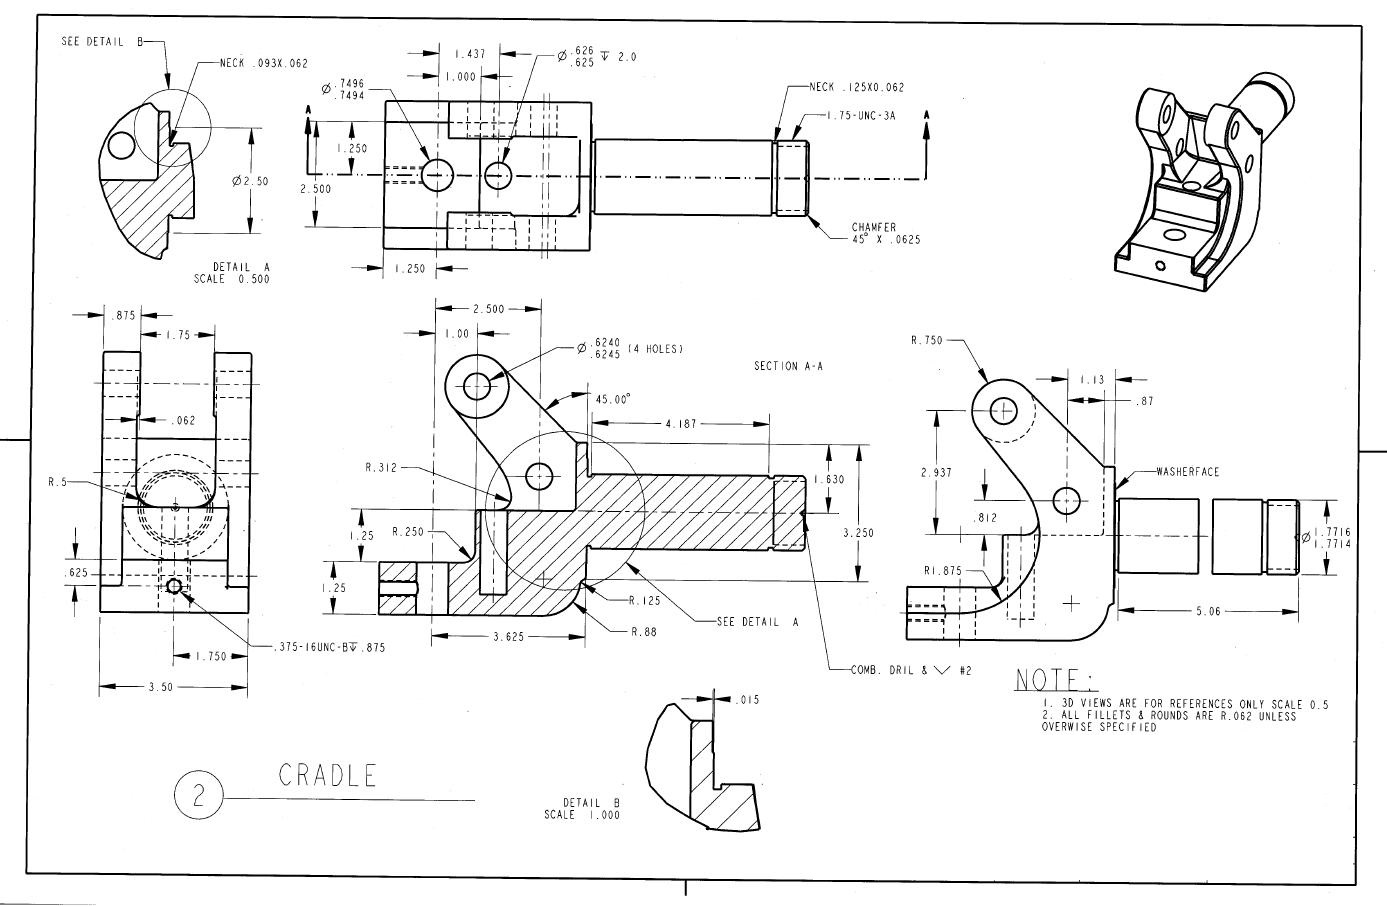 sample 6 technical drawing die stacking